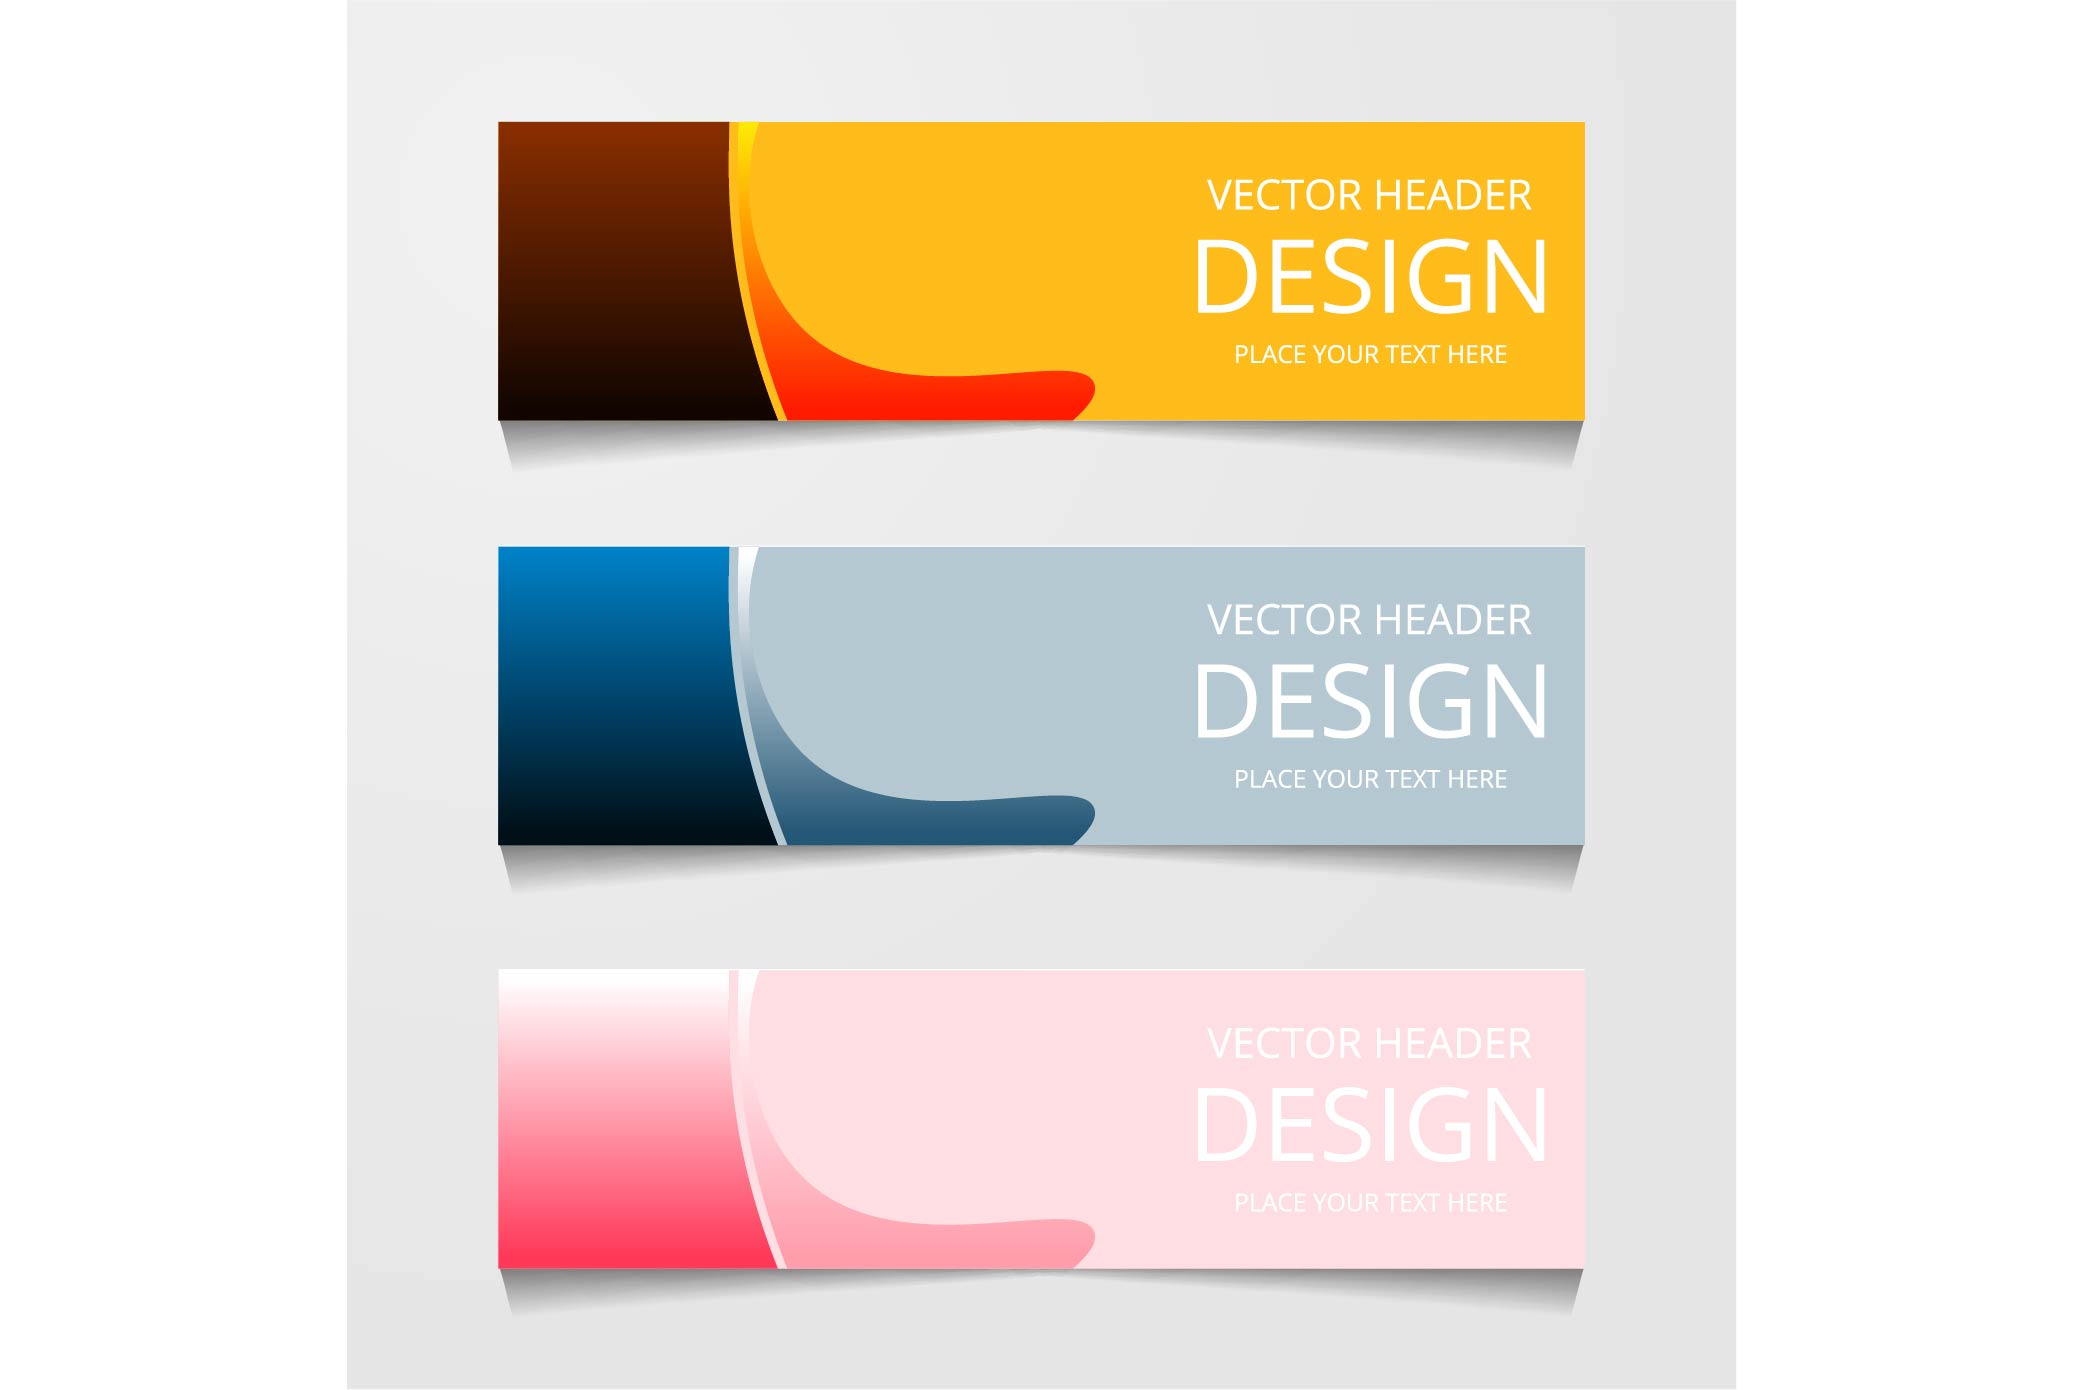 Download Free Vector Design Banner Background Modern Graphic By Ojosujono96 for Cricut Explore, Silhouette and other cutting machines.